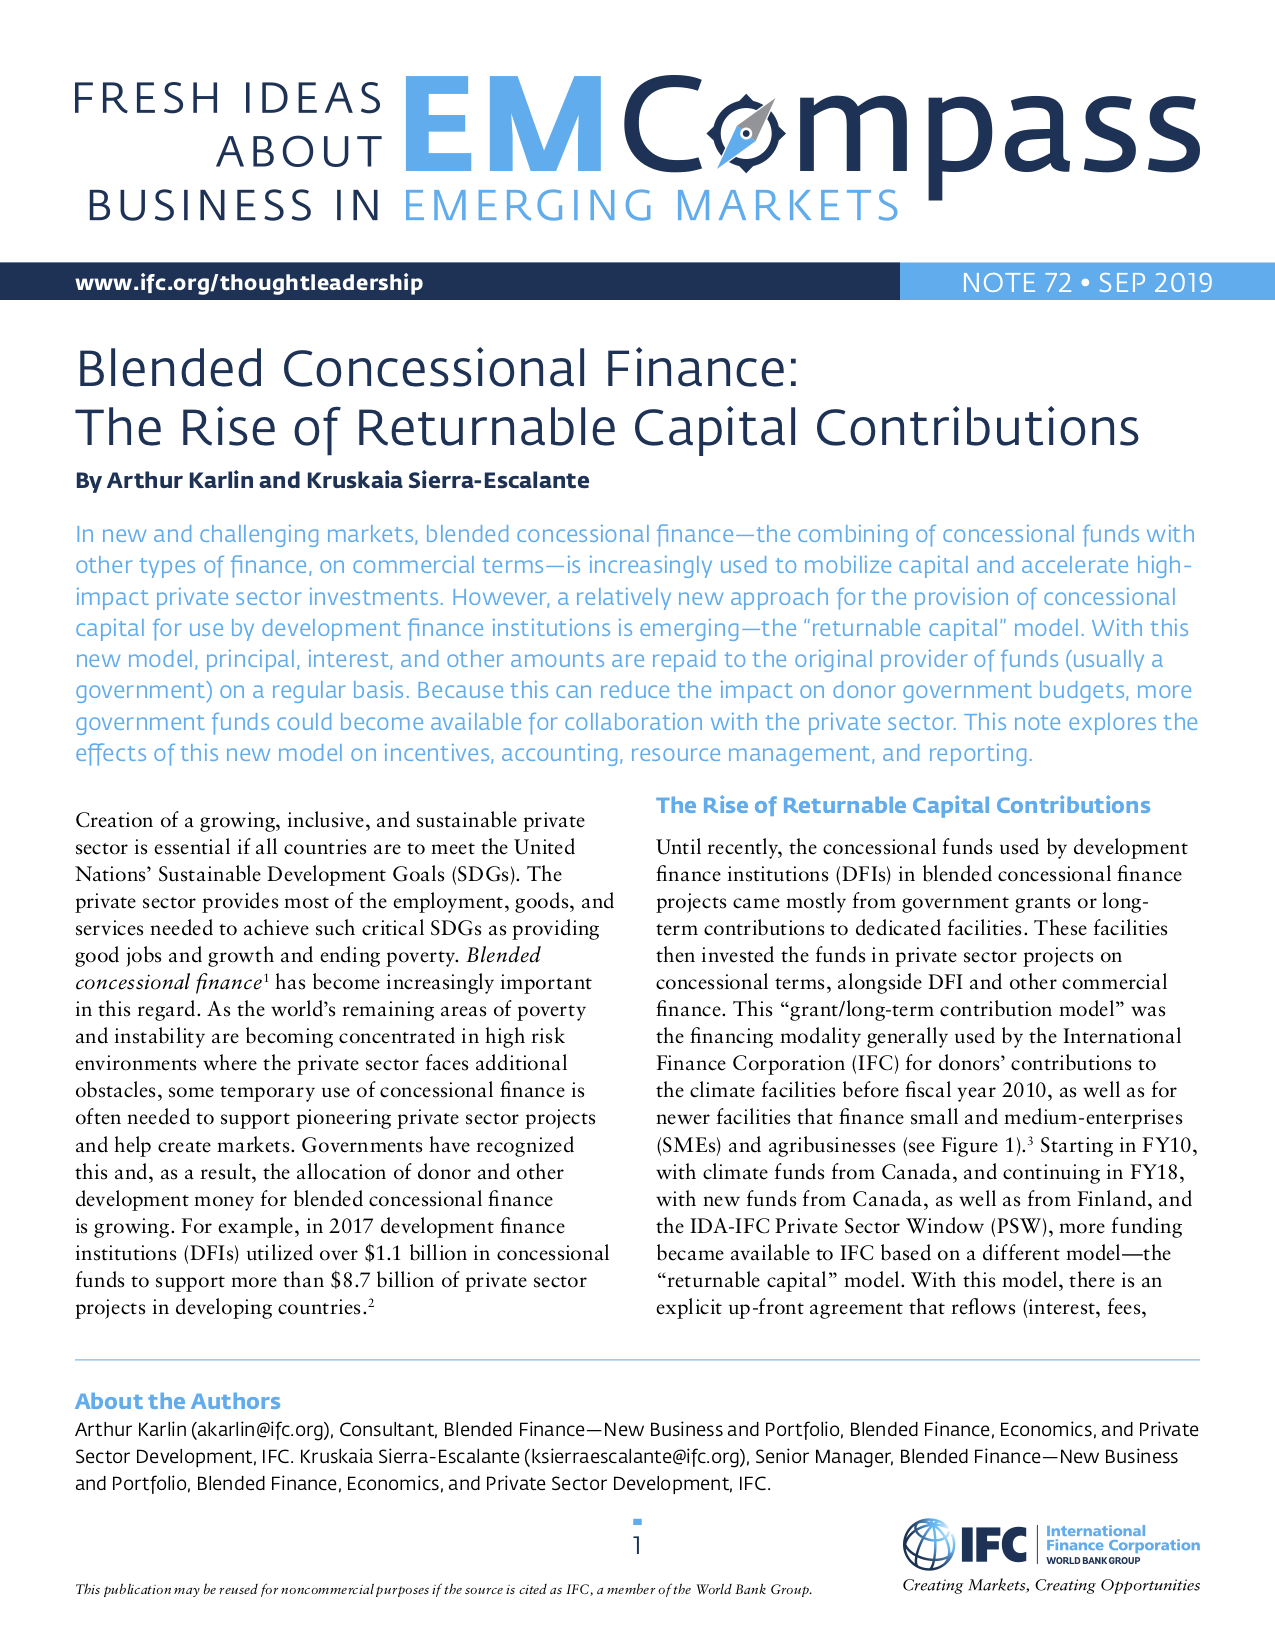 Blended Concessional Finance: The Rise of Returnable Capital Contributions